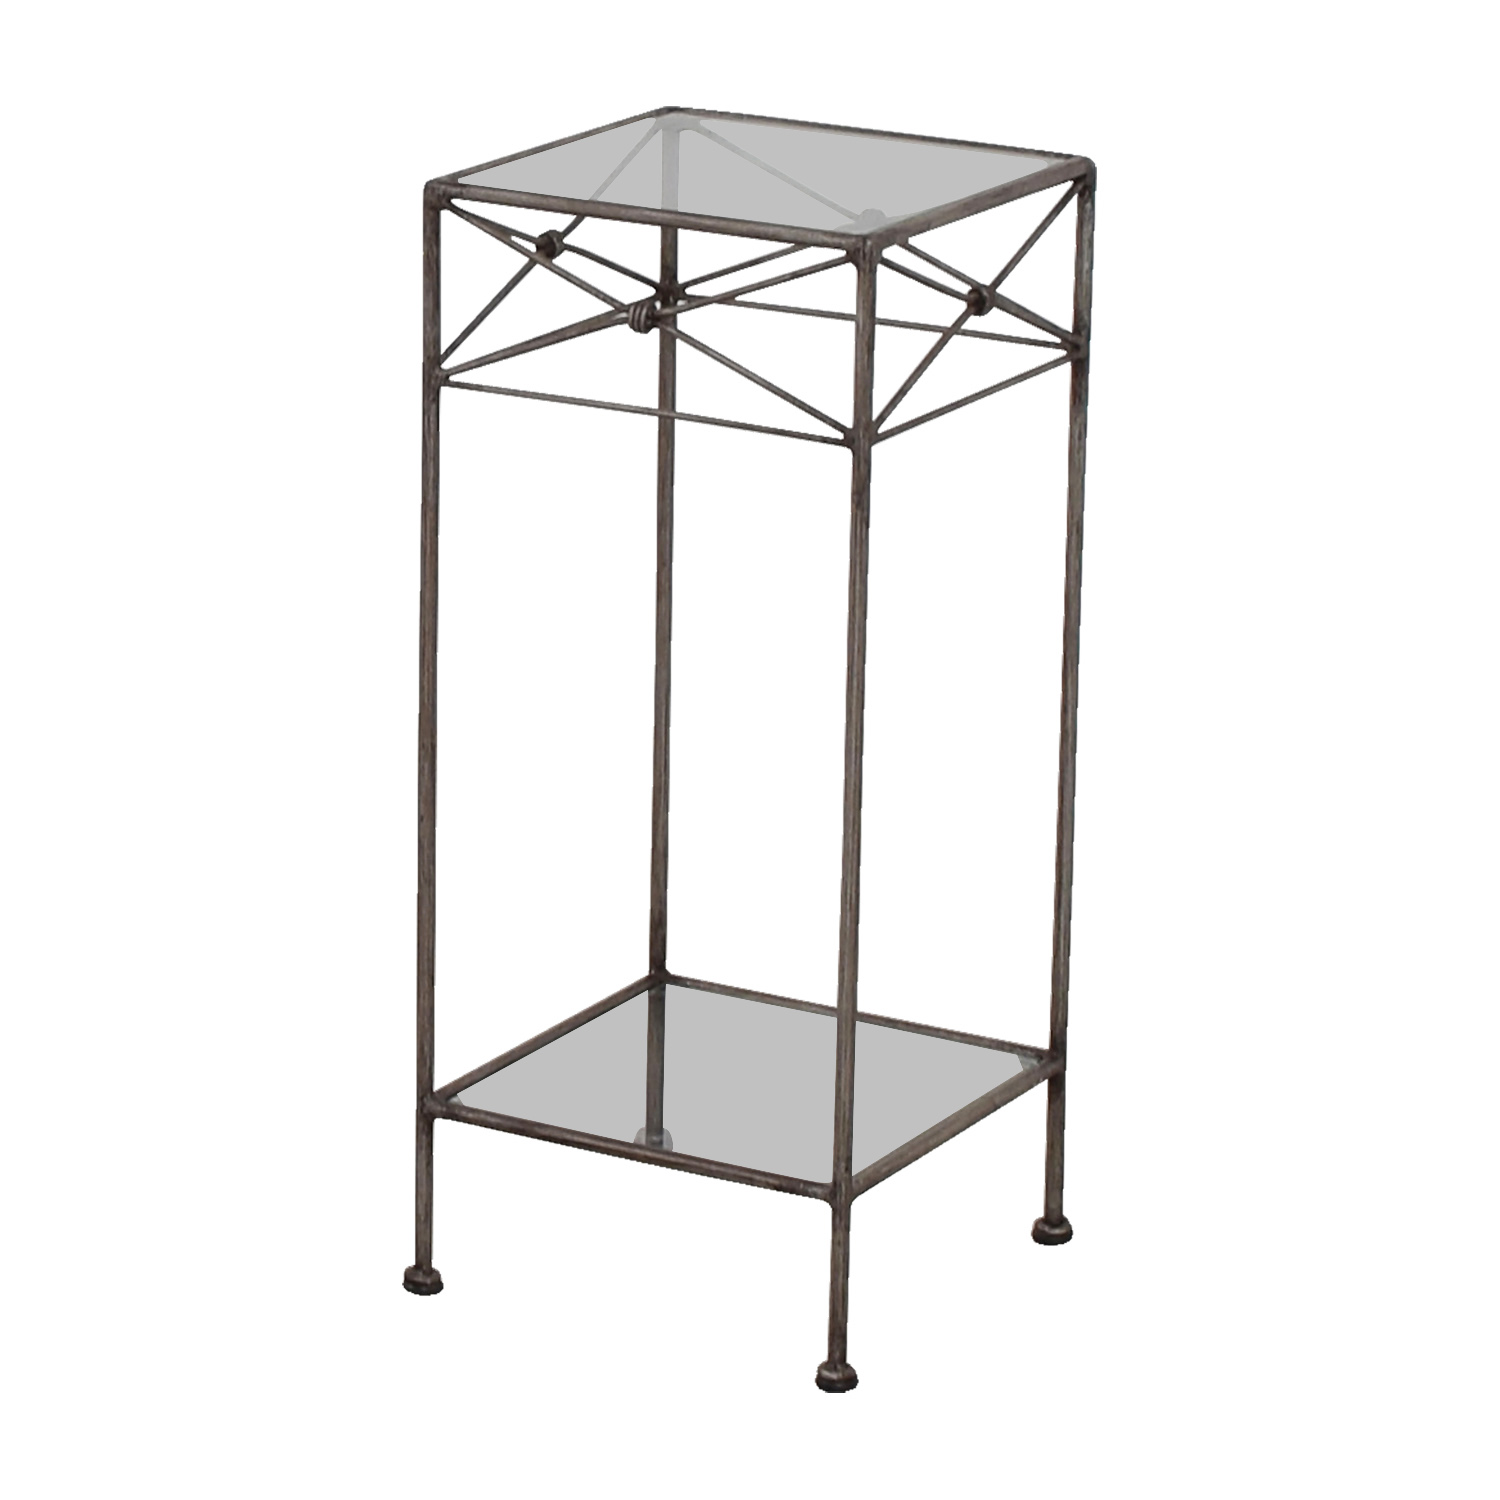 57 off wrought iron and glass side table tables for Wrought iron and glass side tables